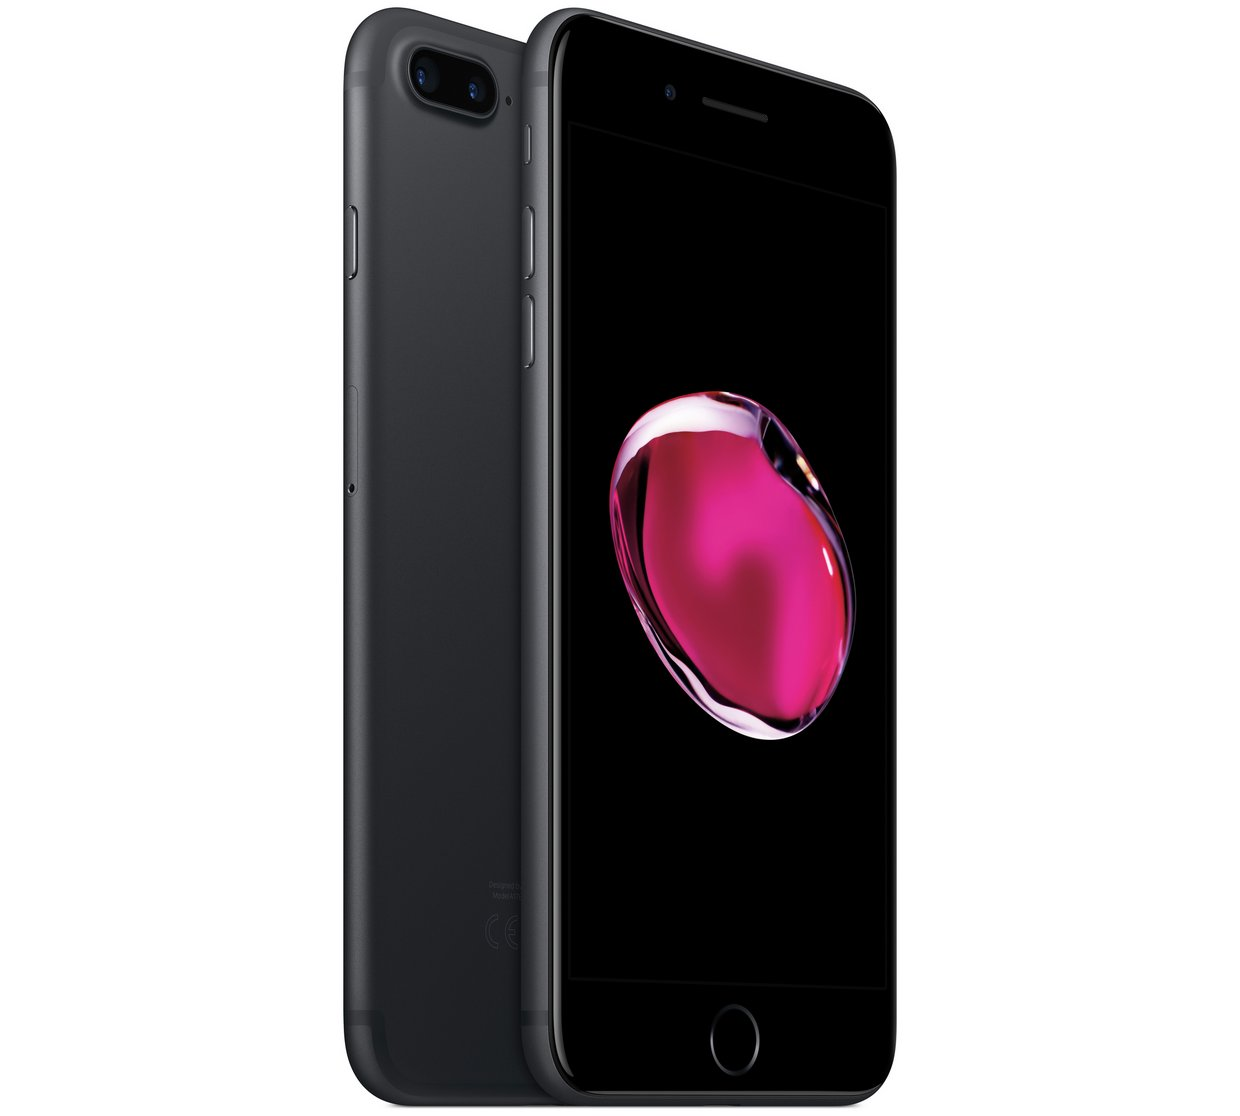 IPHONE 7 PLUS 128GB MATTE BLACK PRICE